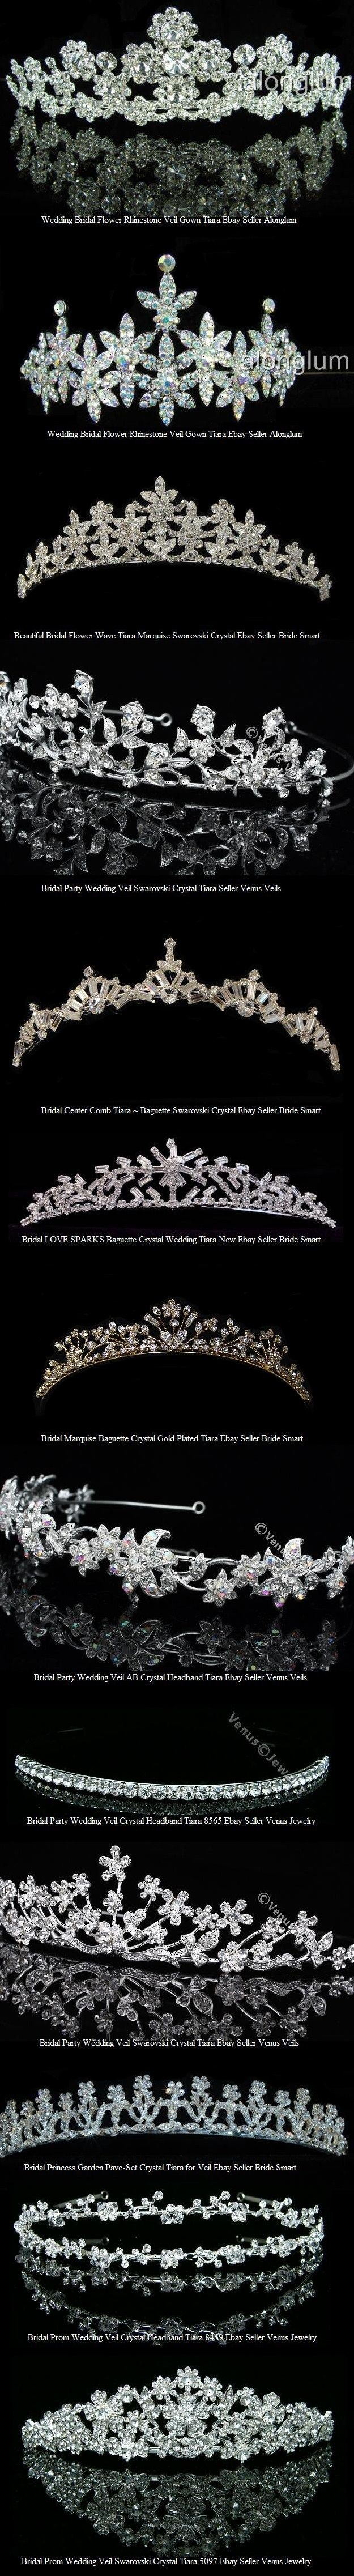 A few other Tiaras